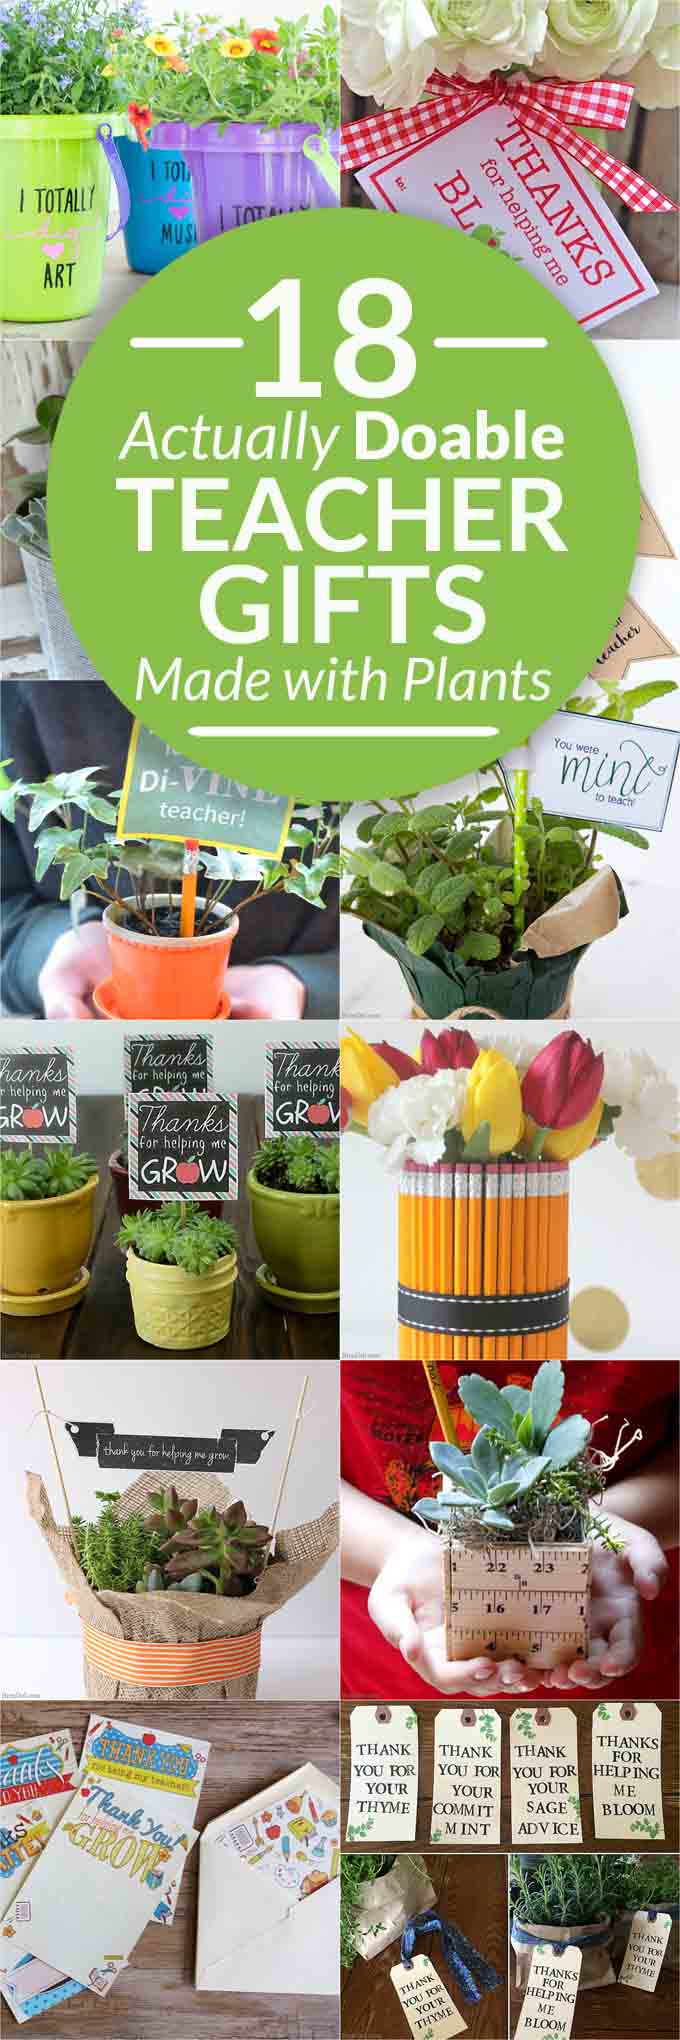 adorable teacher gifts from plants from Bren Did